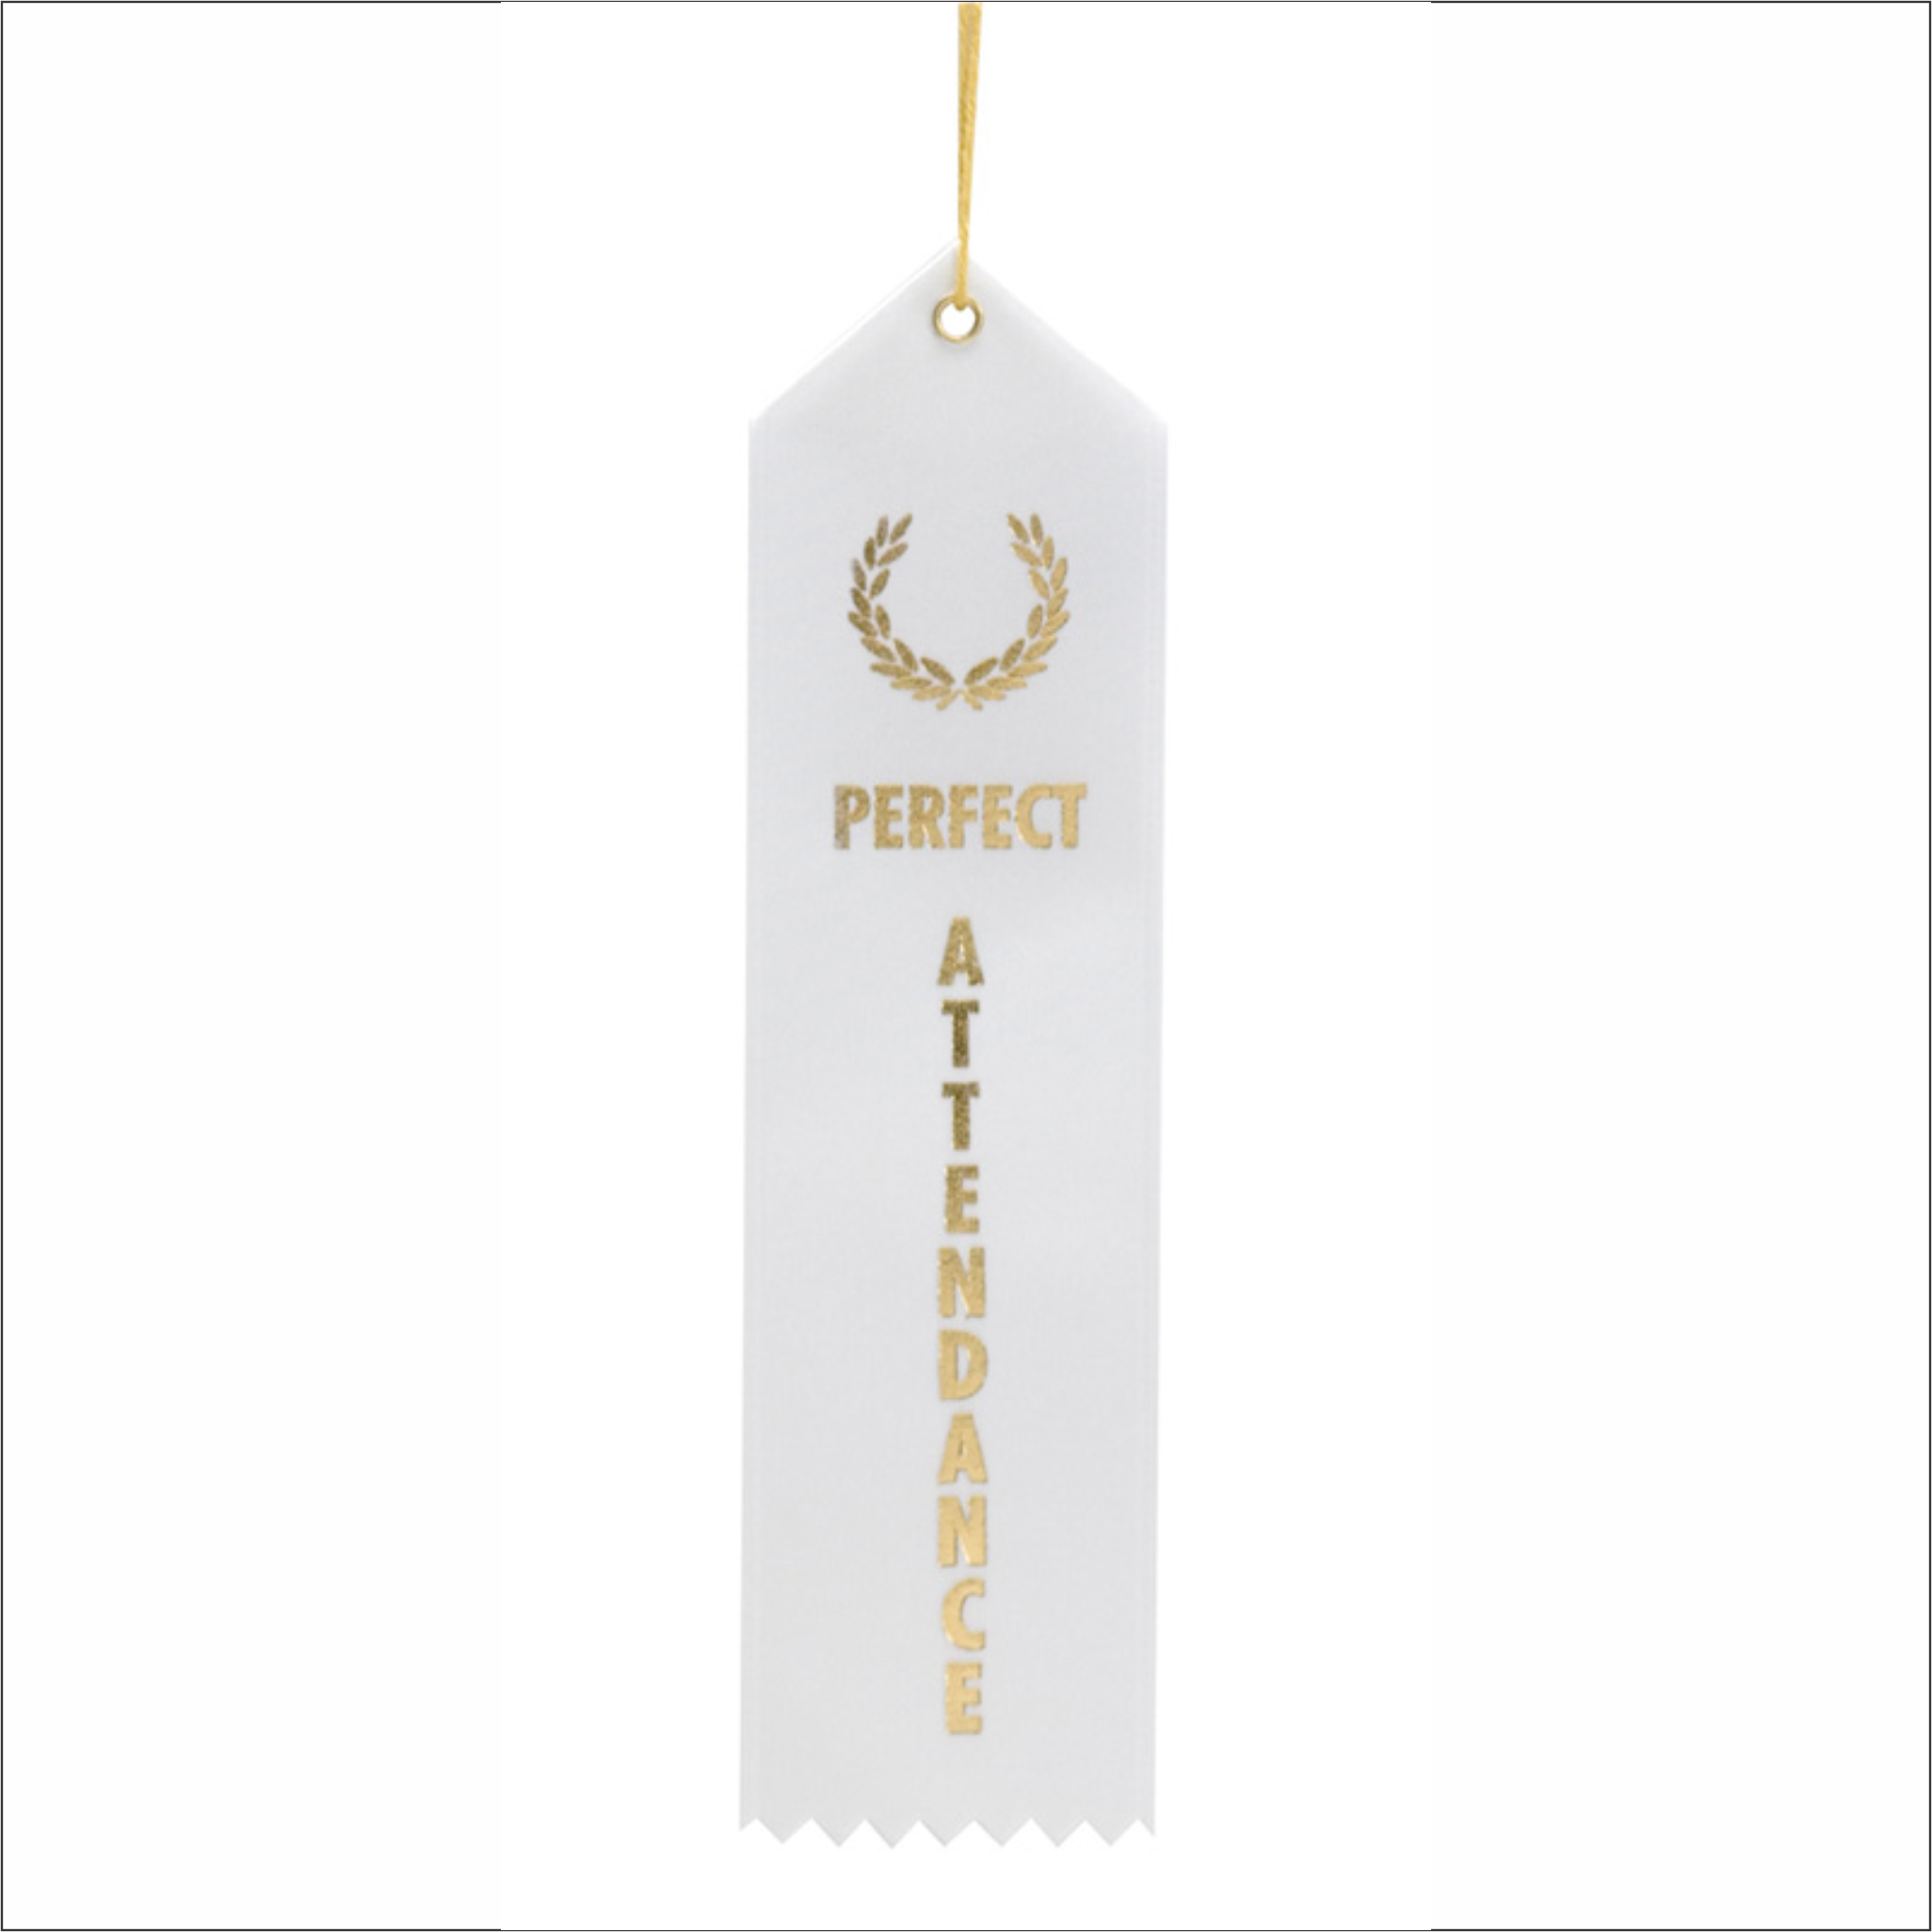 Perfect Attendance Ribbons - Pack of 25 - SR-1000 series